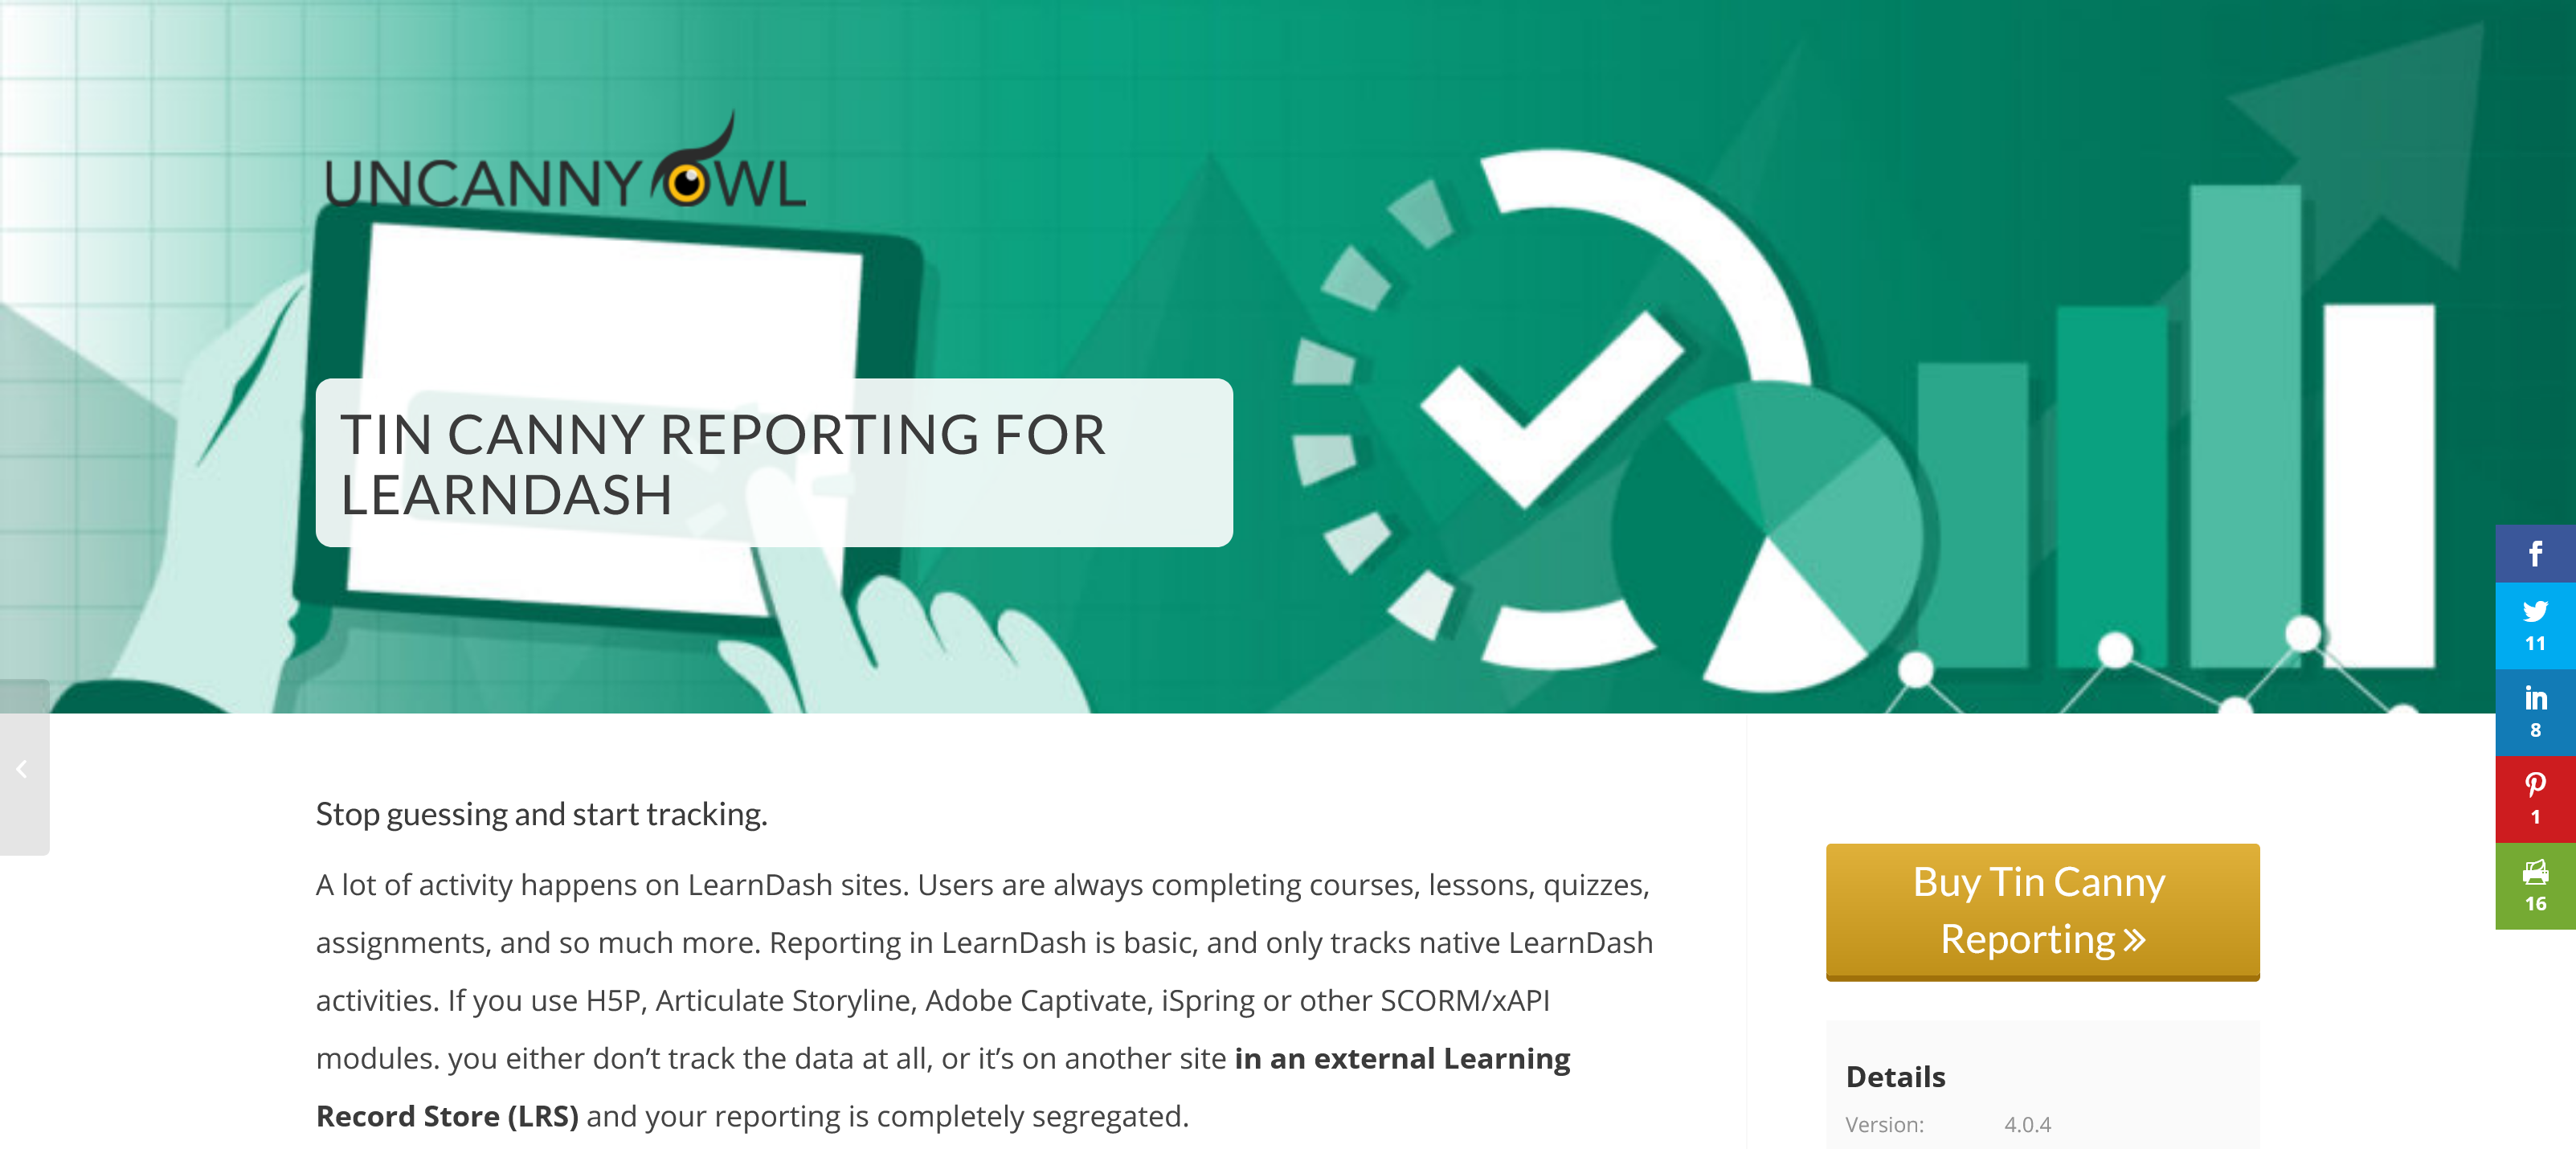 Tin Canny LearnDash Reporting 3.6.2 – Stop guessing and start tracking